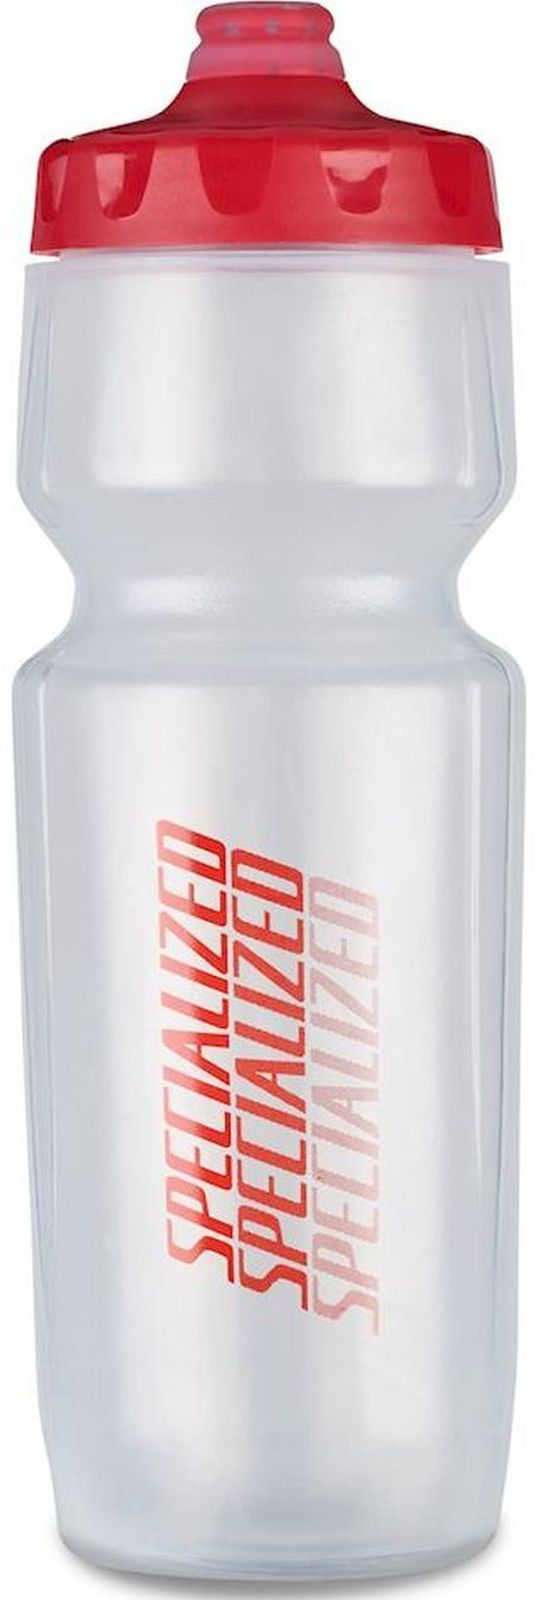 Specialized Purist Hydroflo Fixy 23 oz - translucent/red diffuse uni